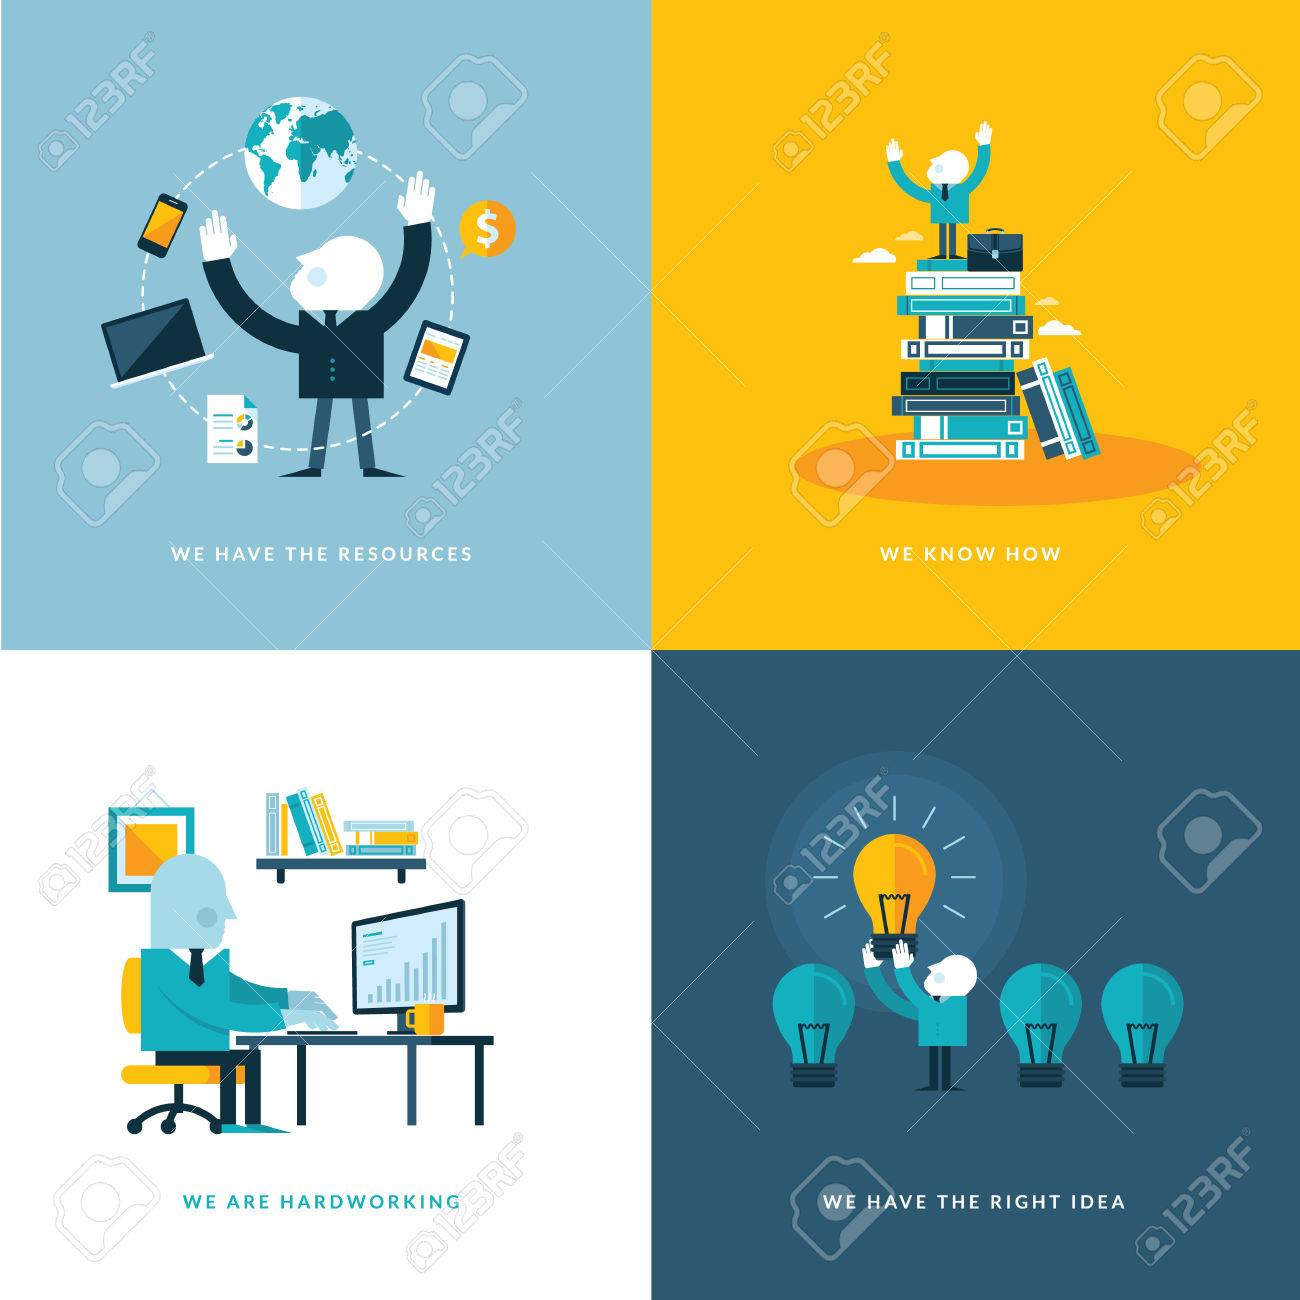 Set of flat design concept icons for business Icons for company resources, know how, hardworking, and creativity - 27535921